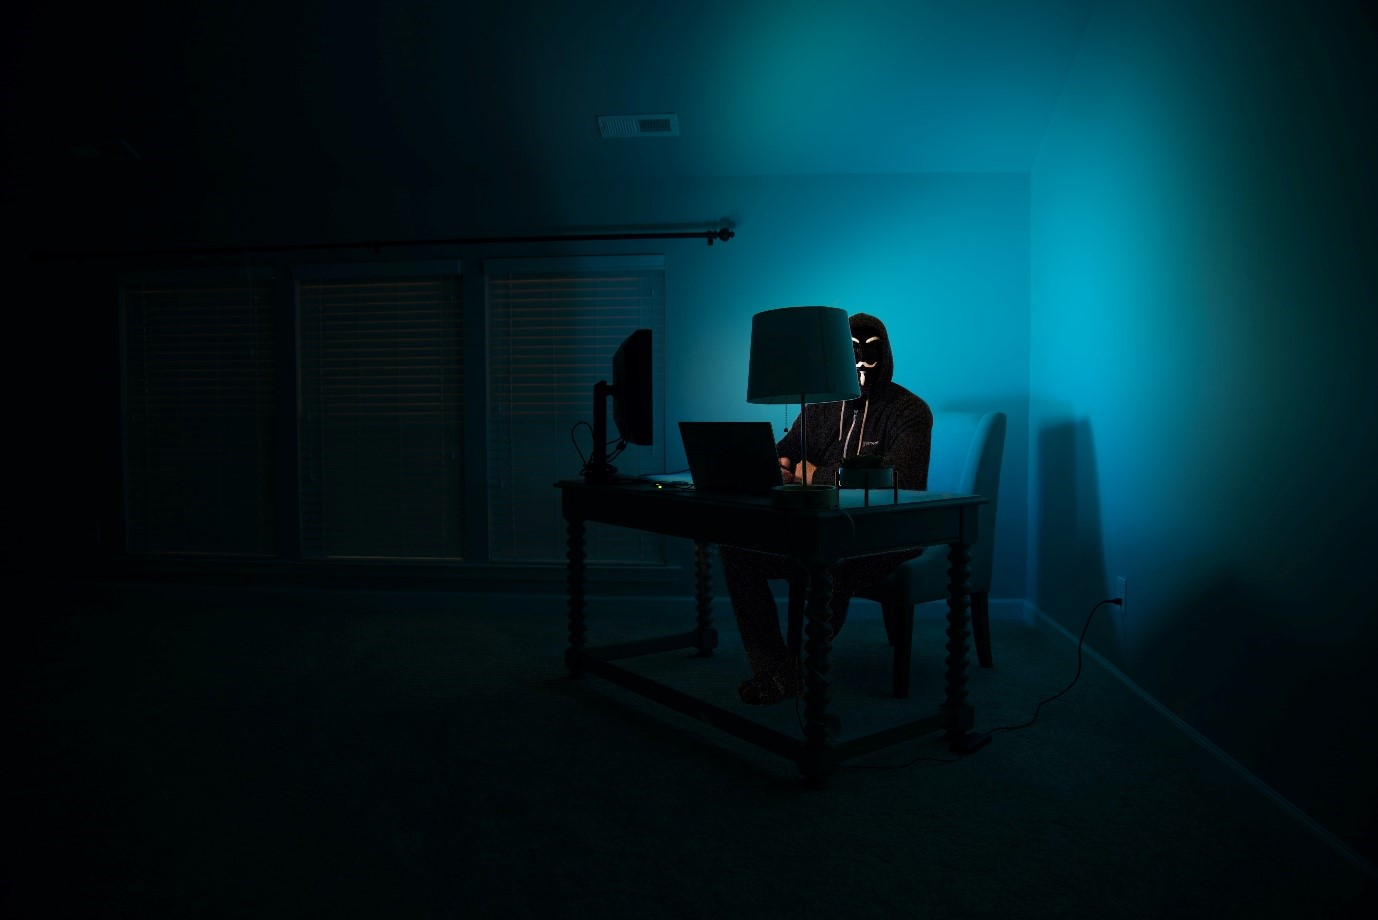 content/en-in/images/repository/isc/2020/deep-web-cover.jpg